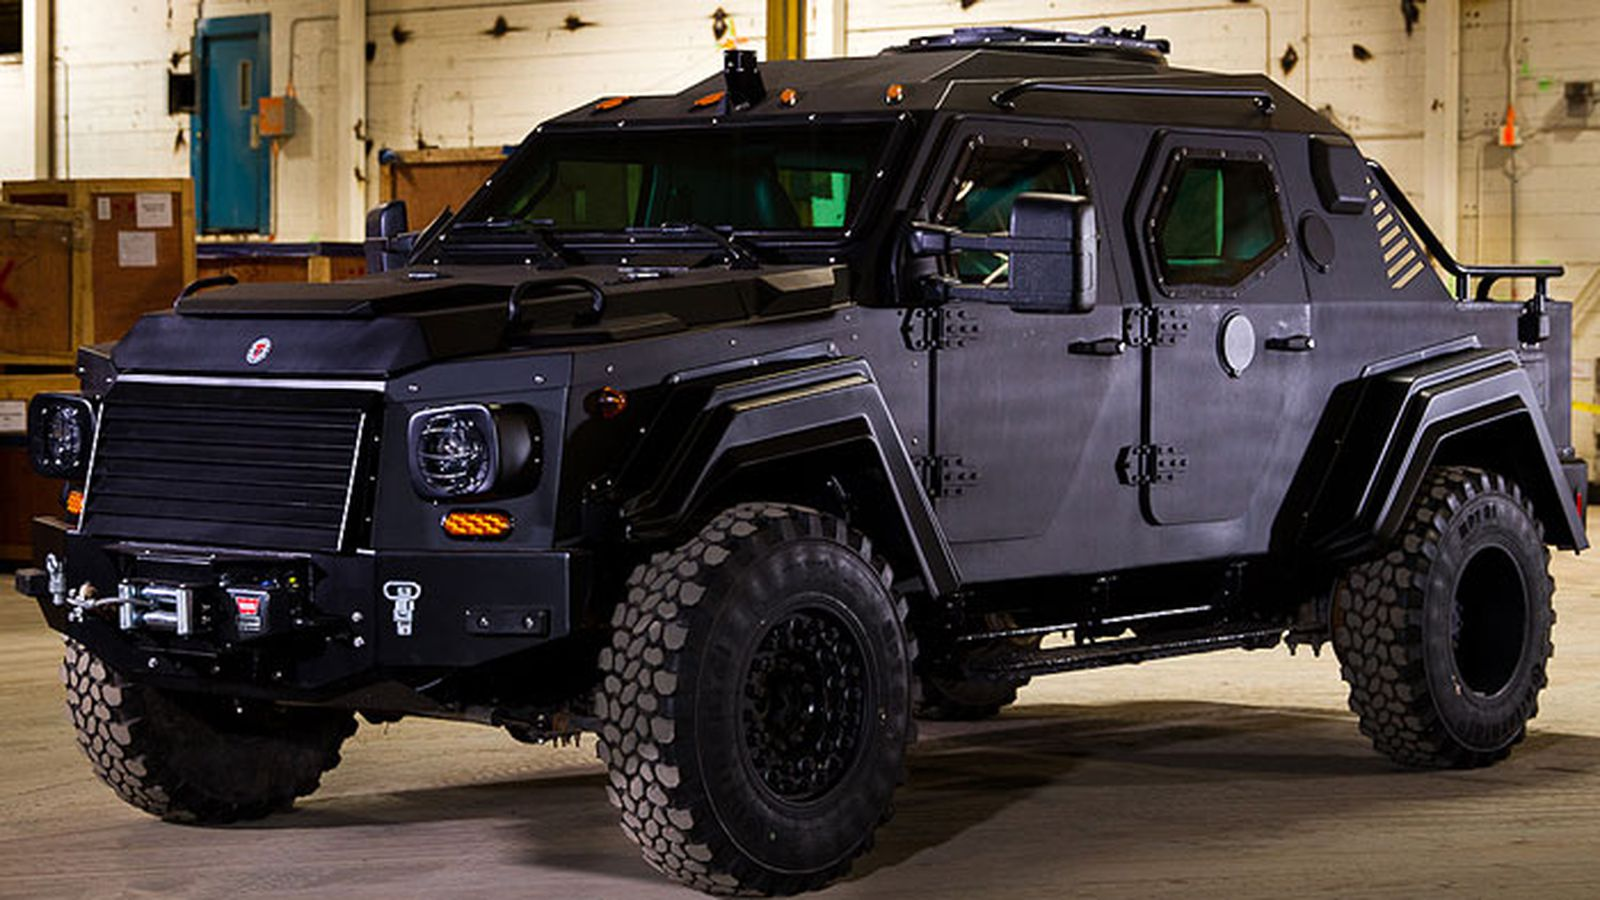 J R Smith Is Now Driving An Armored Military Vehicle